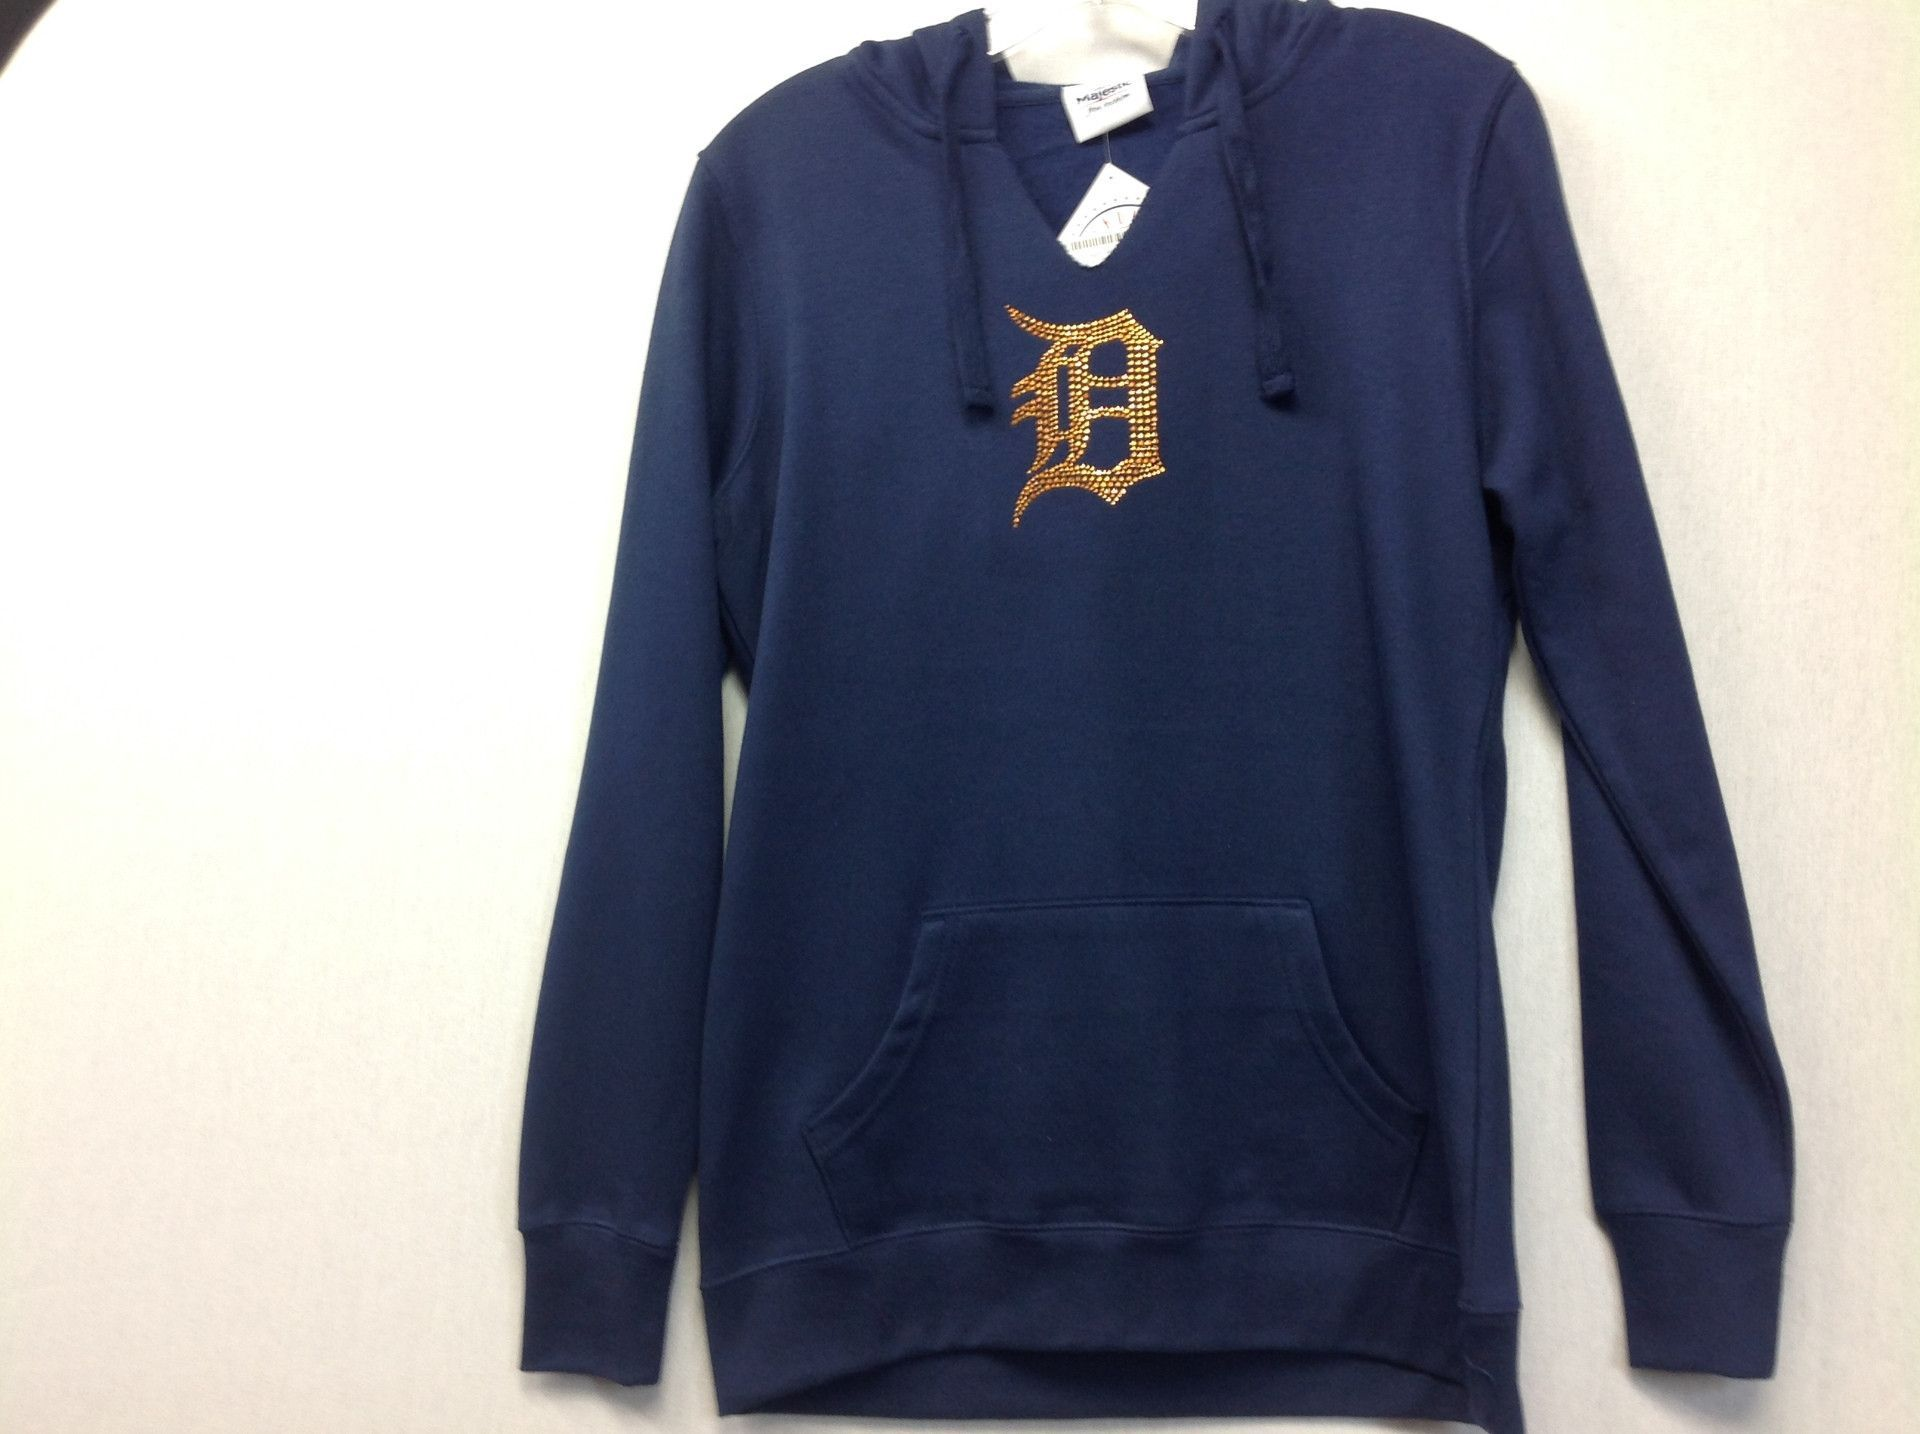 sports shoes e82f7 ec6c3 MLB Detroit Tigers Women's Dream of Diamonds Pullover Hoodie ...